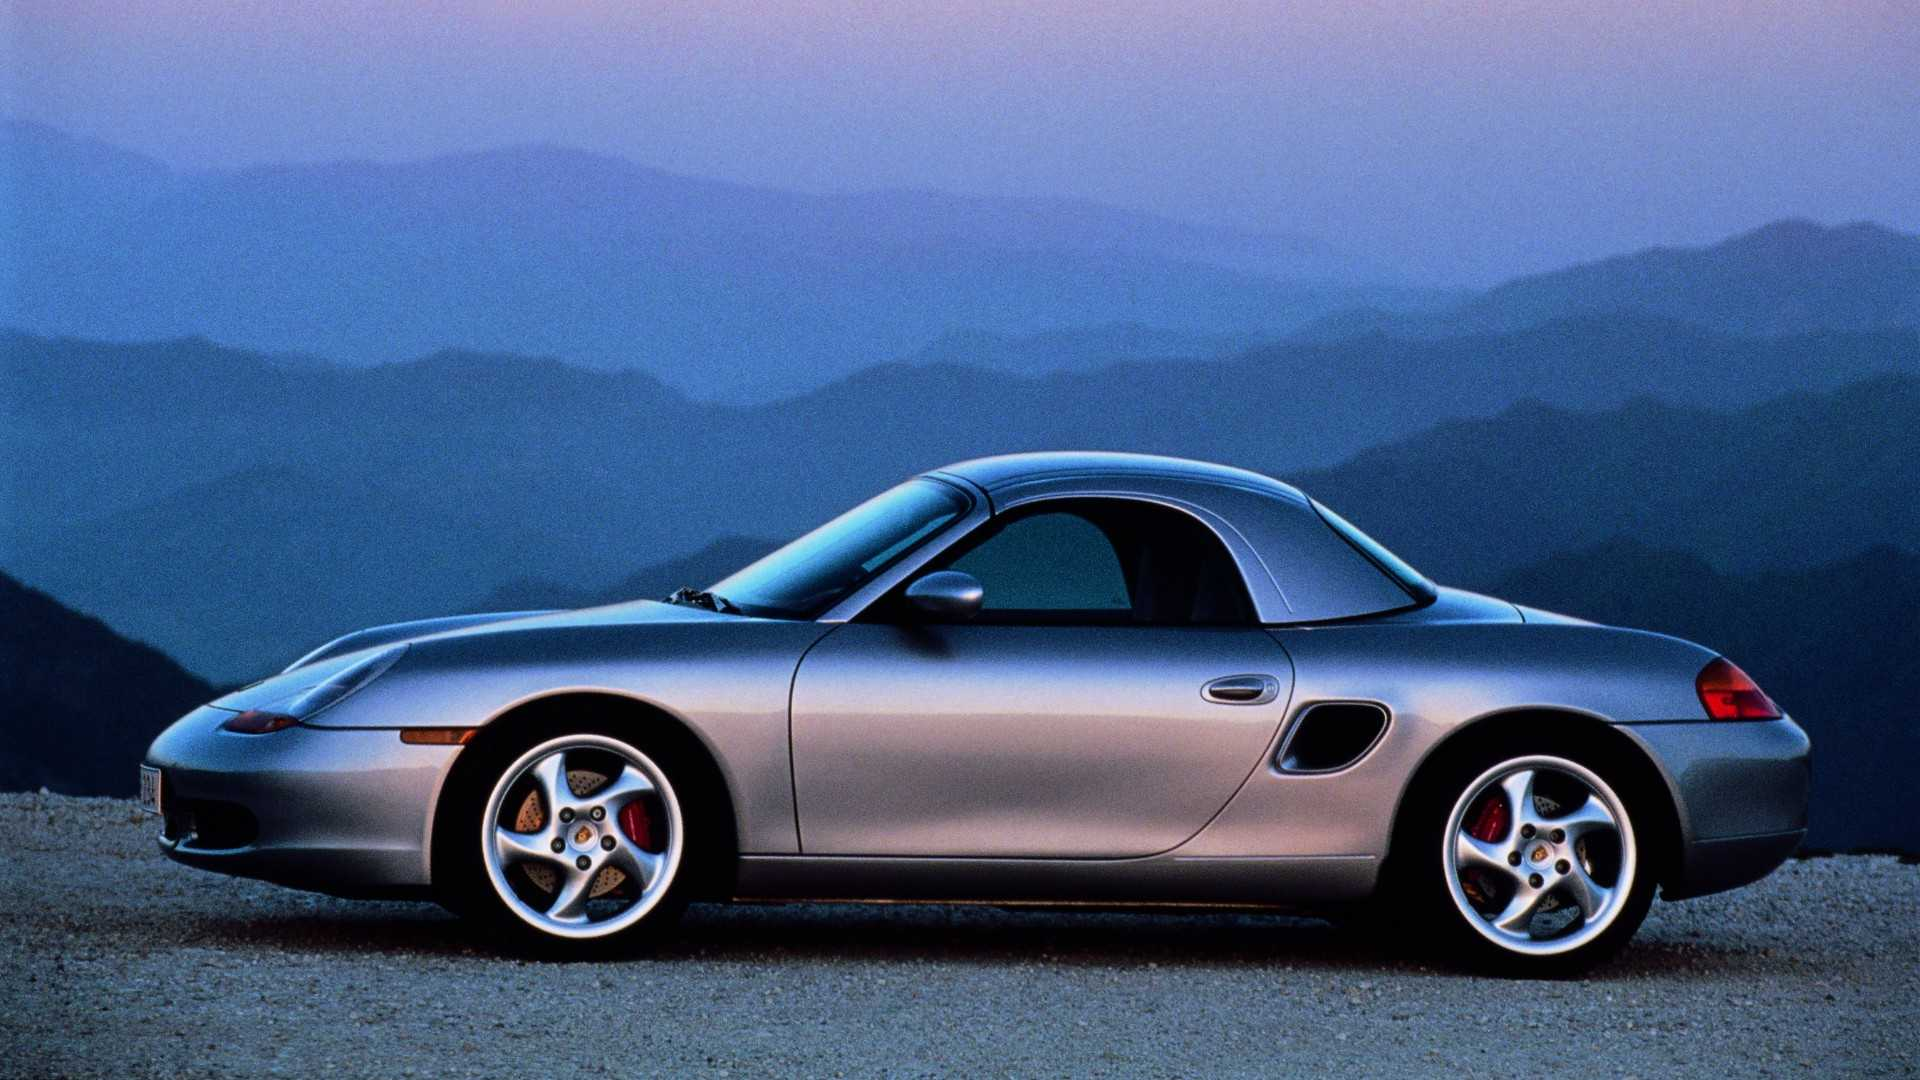 Porsches For Sale >> Top 10 Porsches To Buy Before It S Too Late Motorious